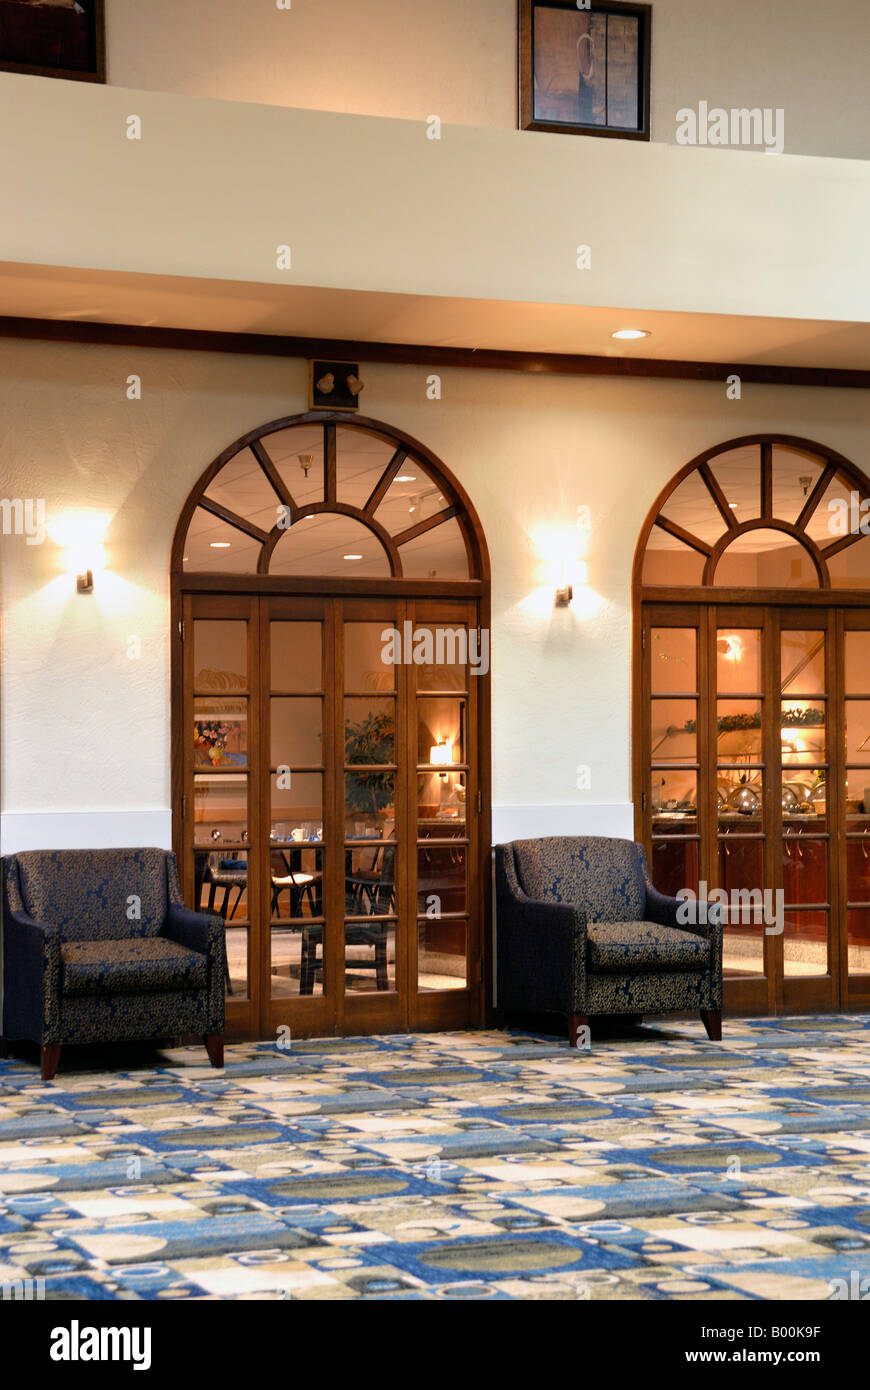 Hotel Restaurant Entry Doors Stock Photo 17225531 Alamy